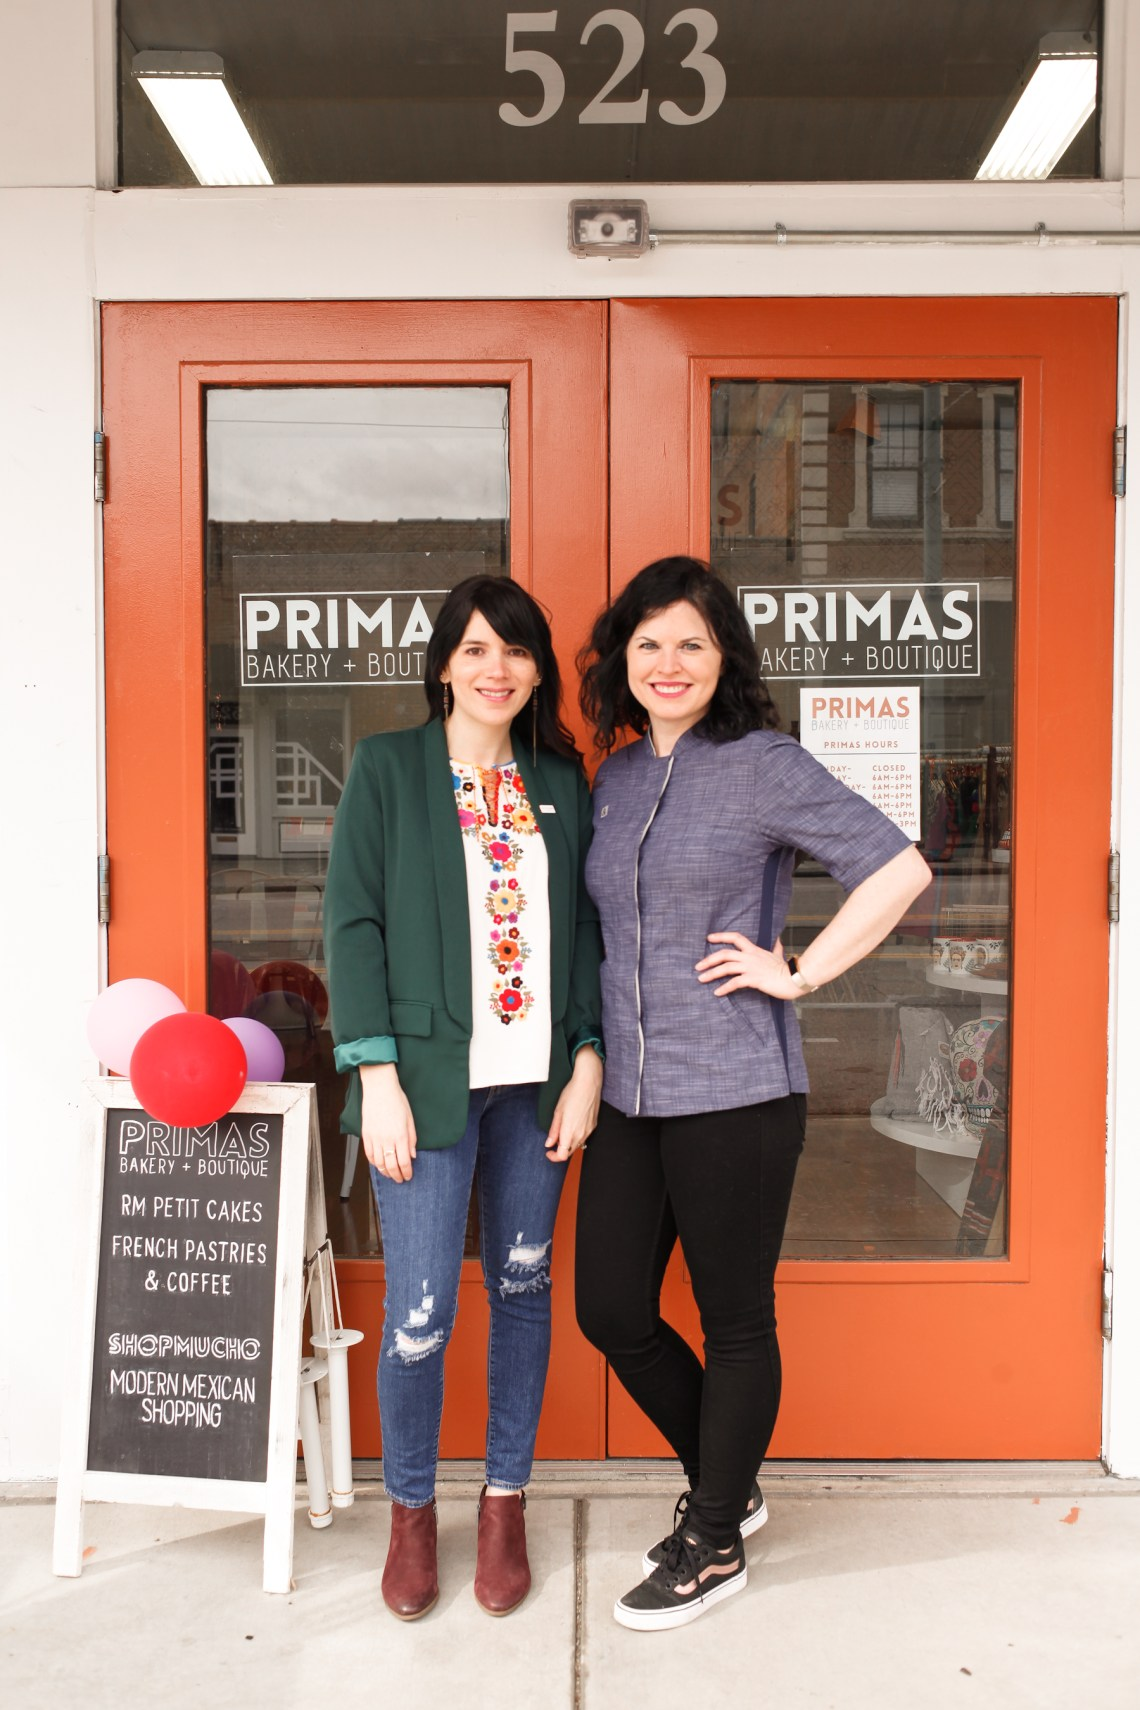 Primas Bakery + Boutique